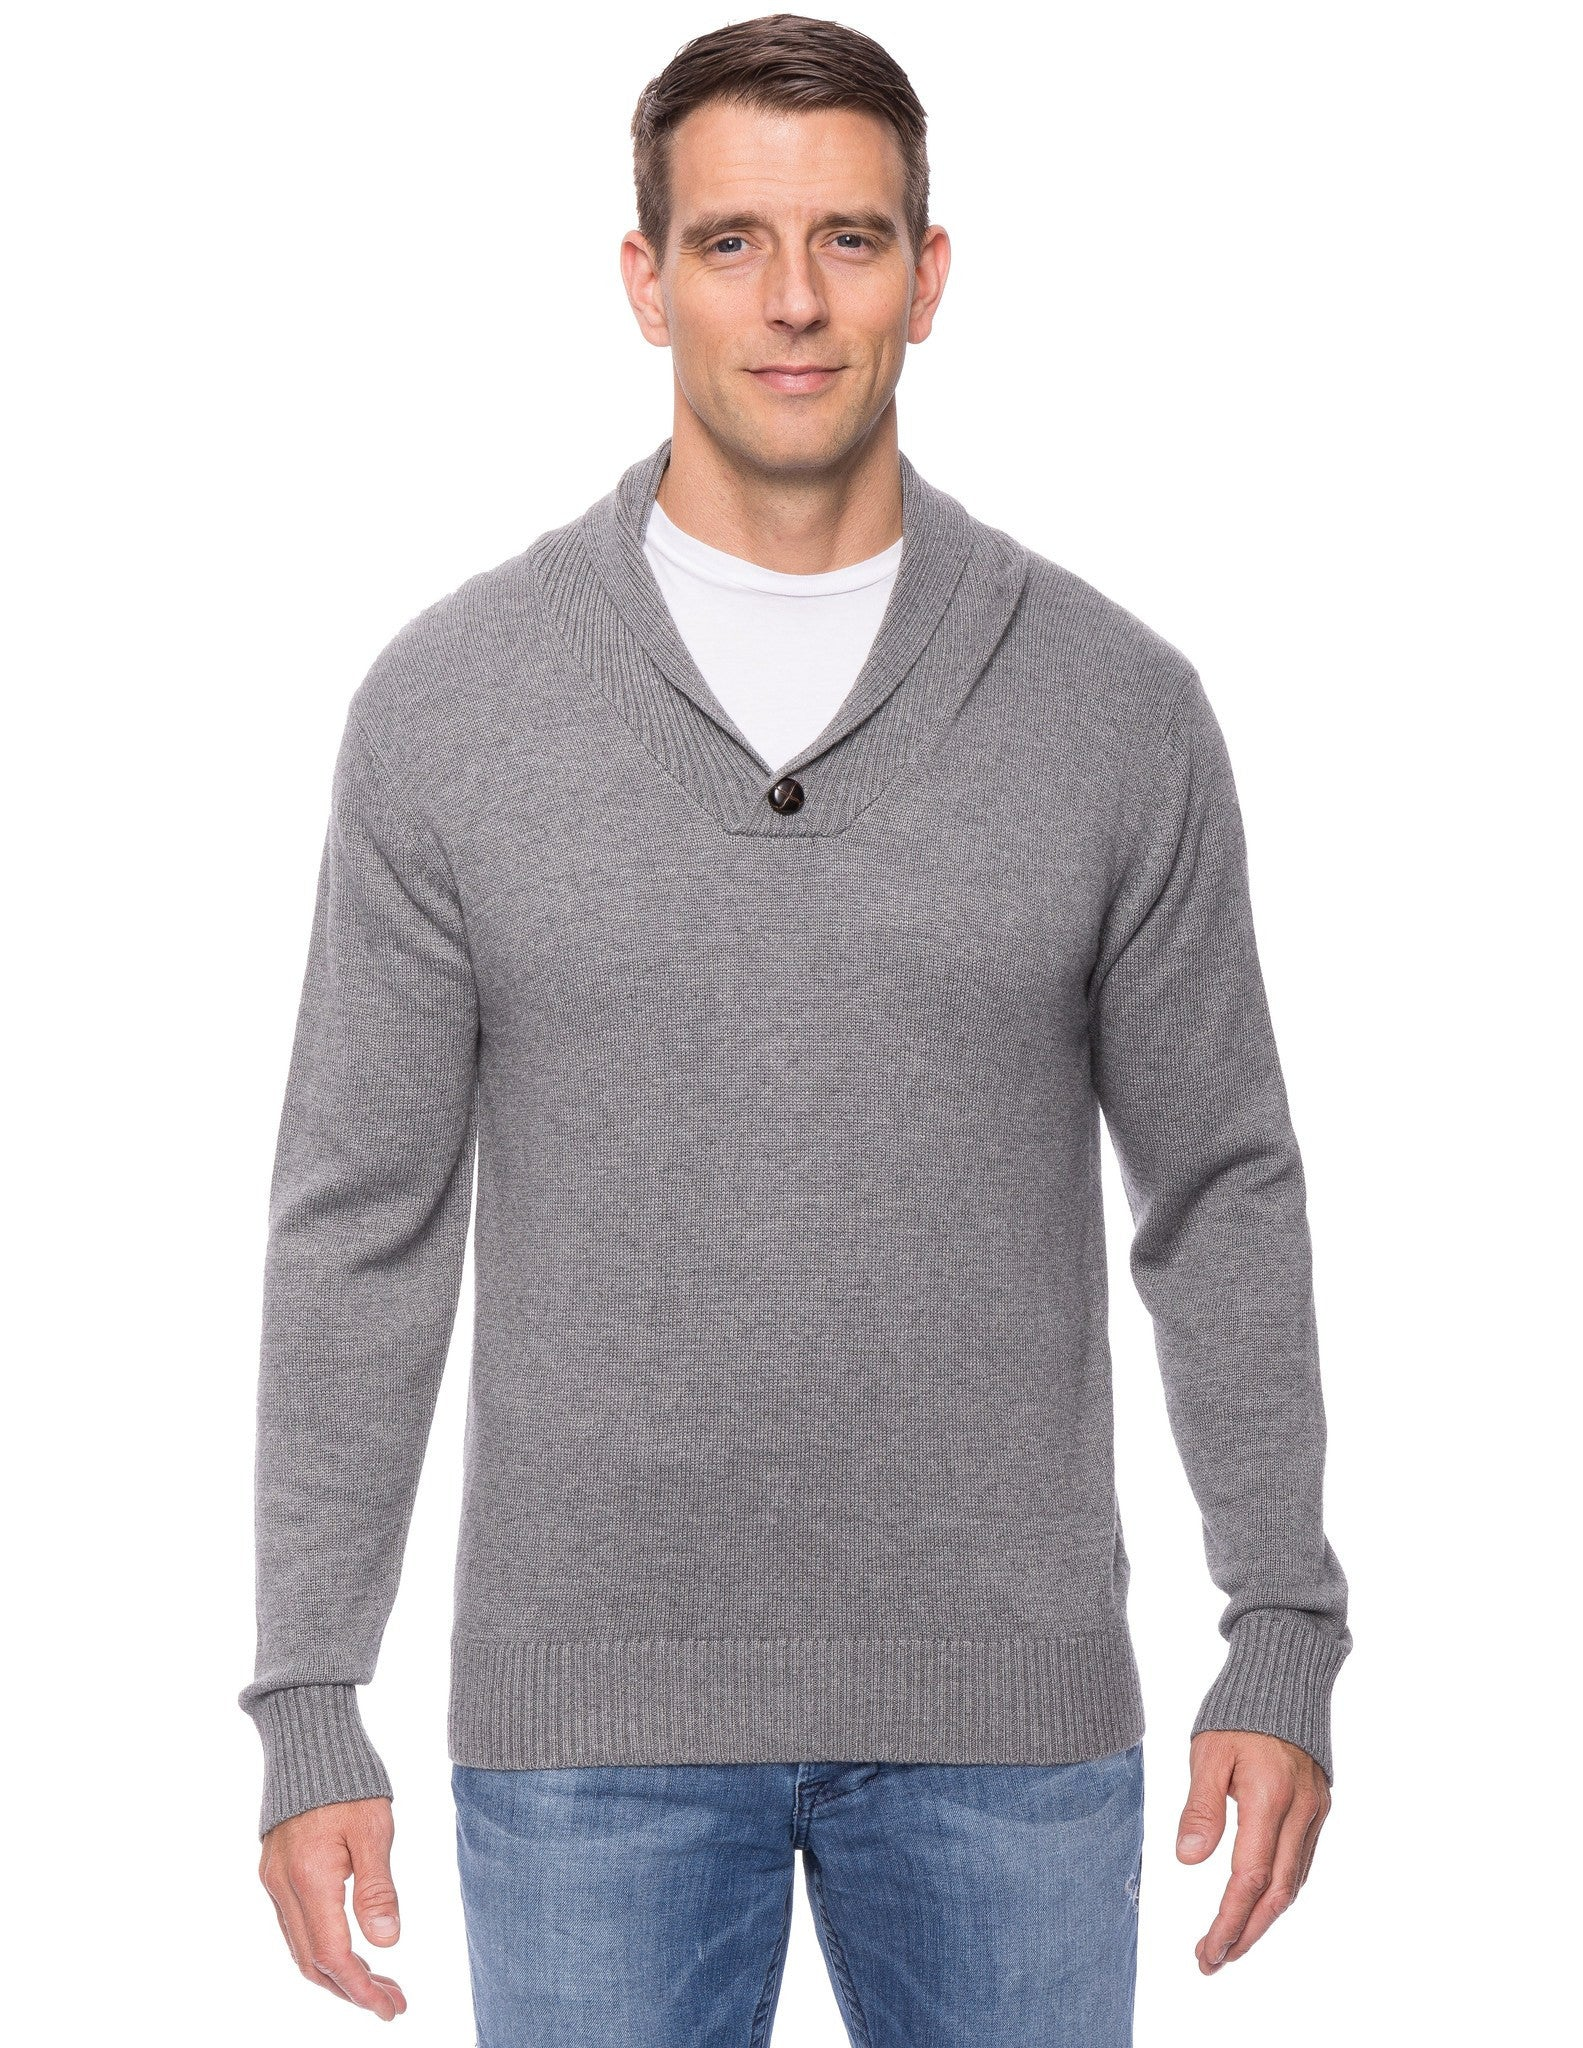 Cashmere Blend Shawl Collar Pullover Sweater - Heather Grey